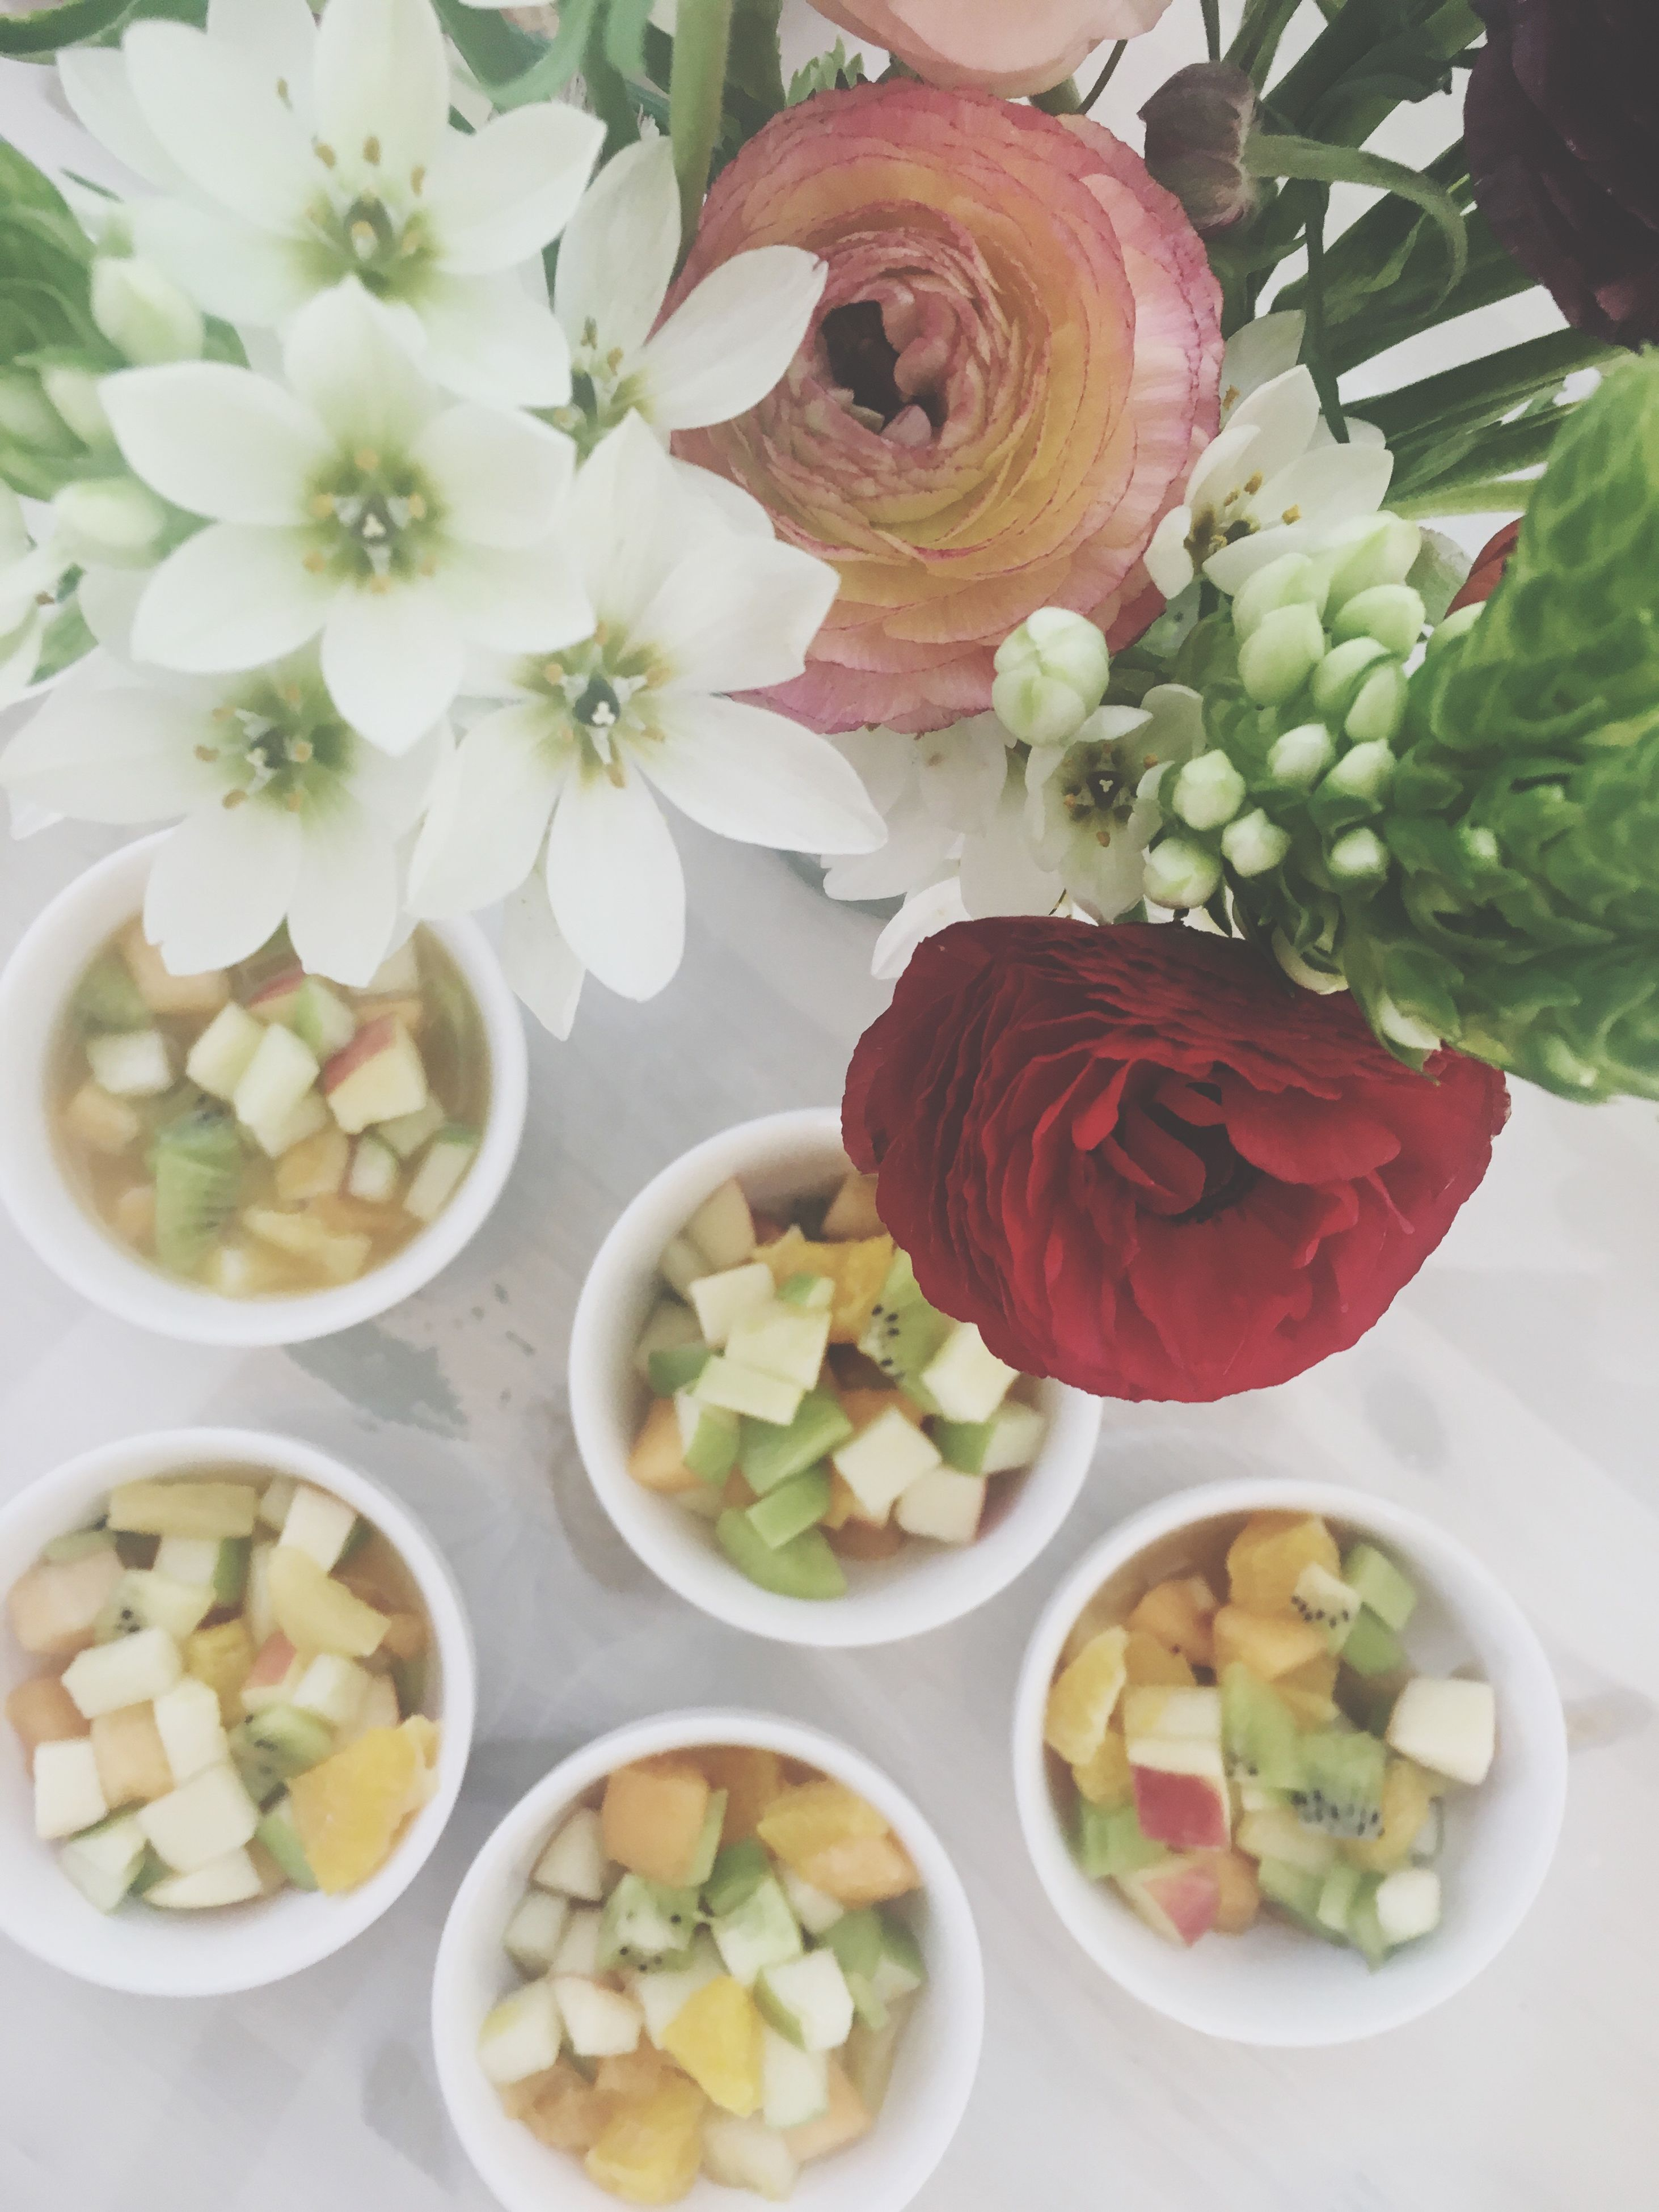 flower, freshness, ready-to-eat, plate, table, indoors, no people, food and drink, food, healthy eating, fragility, close-up, day